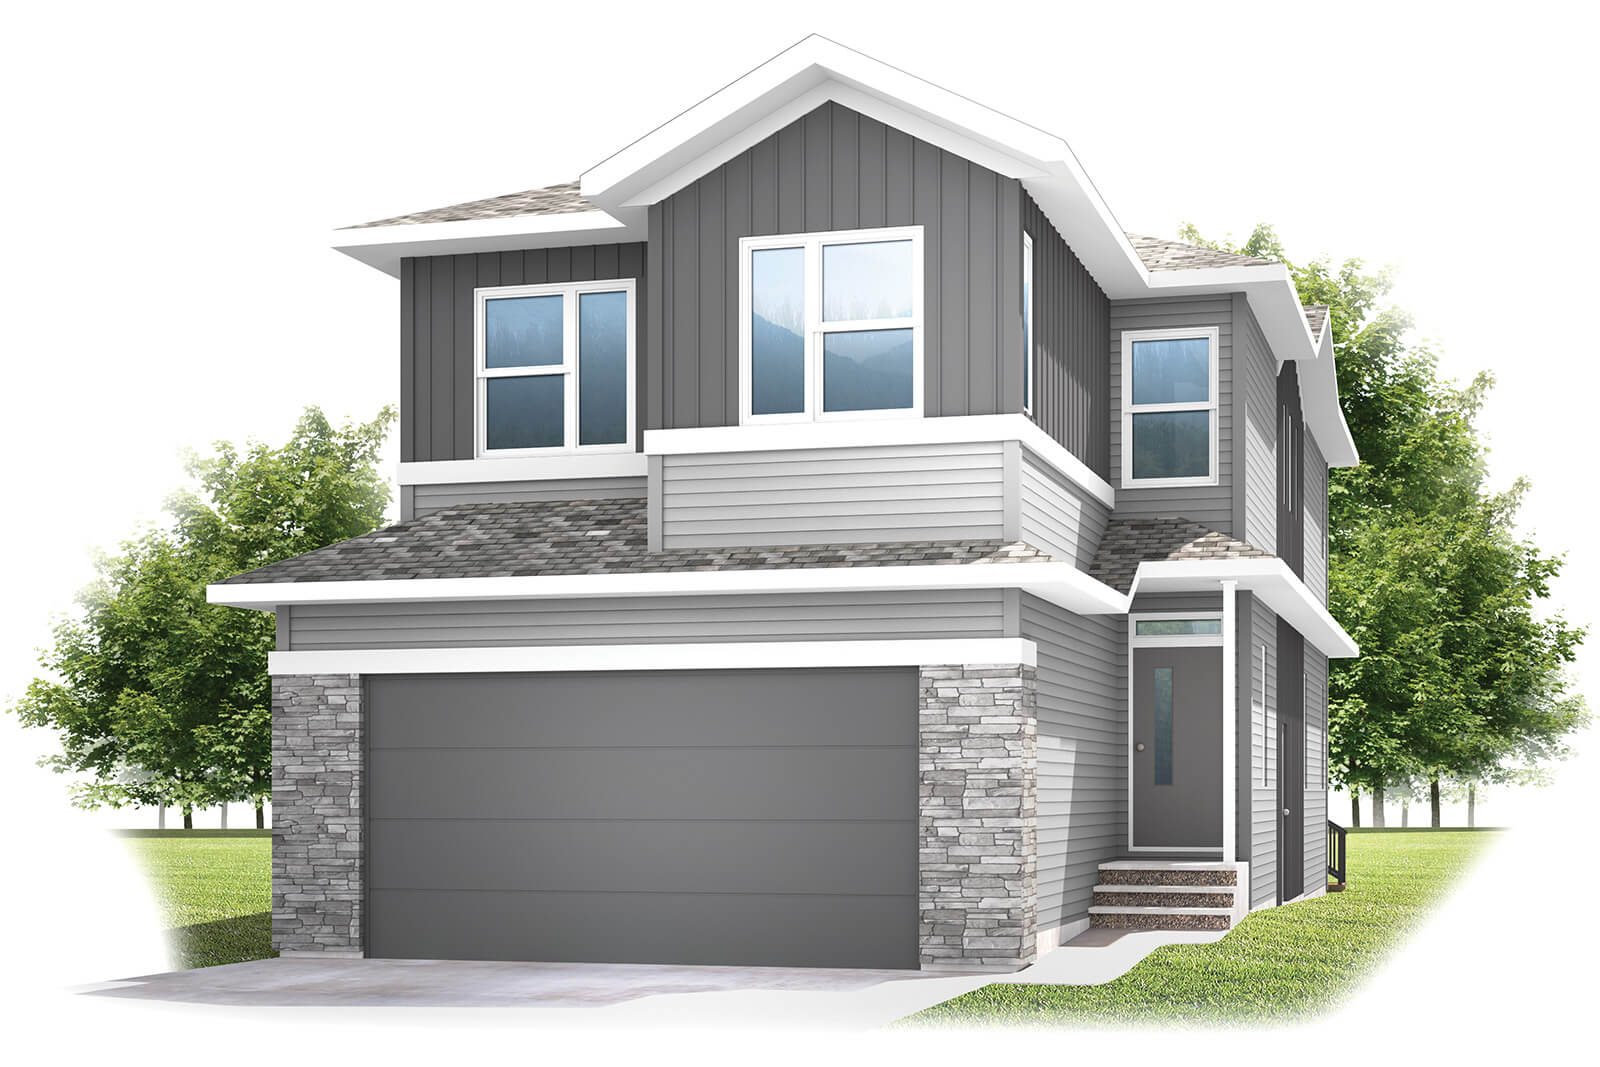 New Calgary Single Family Home Rohan 1 in Shawnee Park, located at 6 Savanna Gardens NE Built By Cardel Homes Calgary